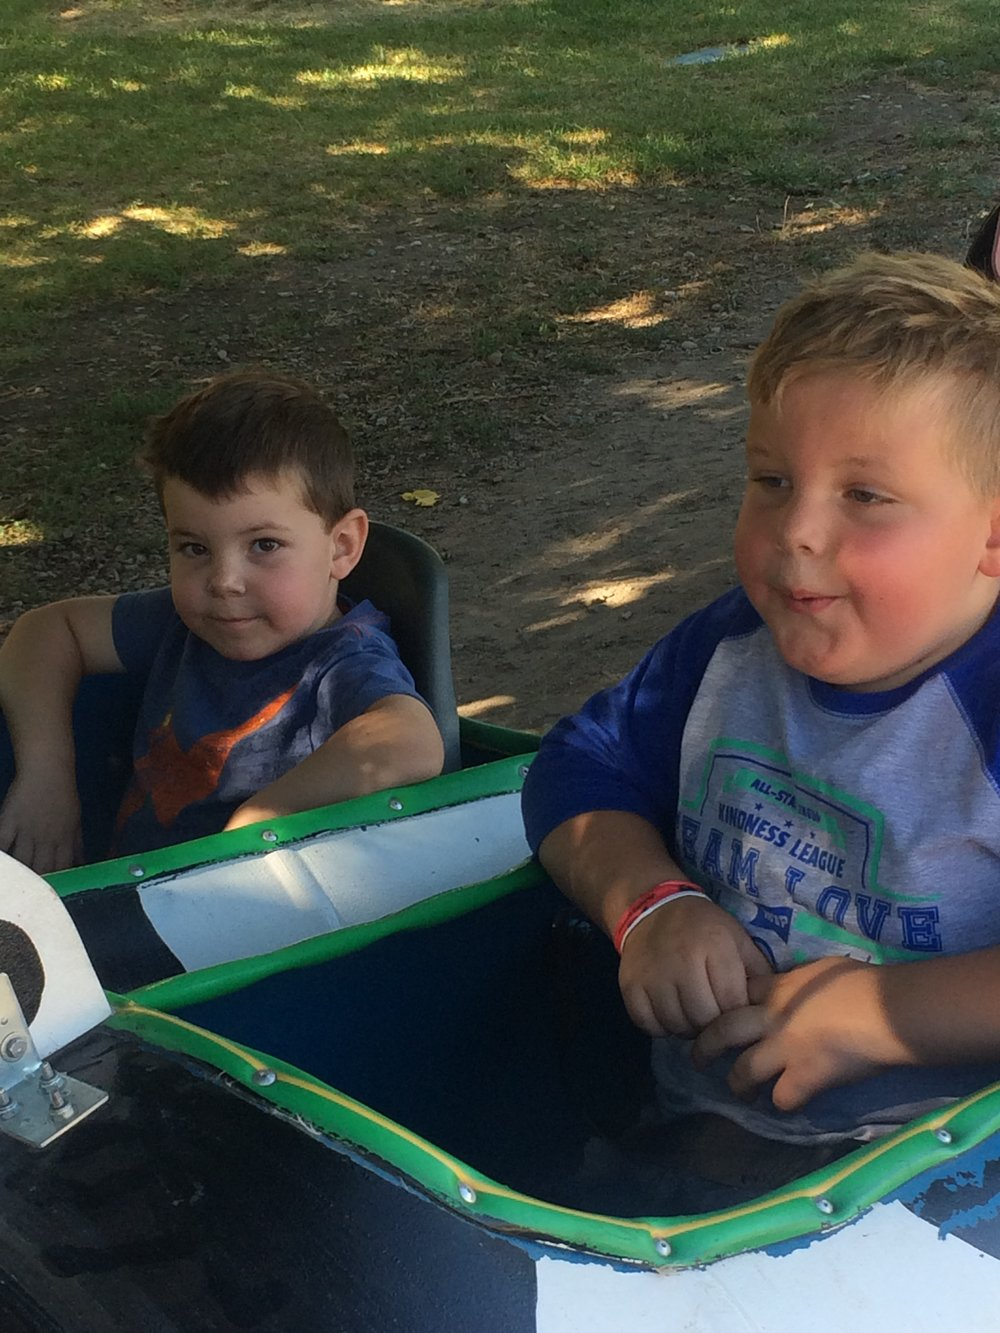 At Wheeler Farm, on Eclipse Day. The last time they rode this ride, Atticus rode it with them. Damien remembered that. Everett probably did not, but said he did. They rode it, and the memory of Atticus rode along. That is just our life now.